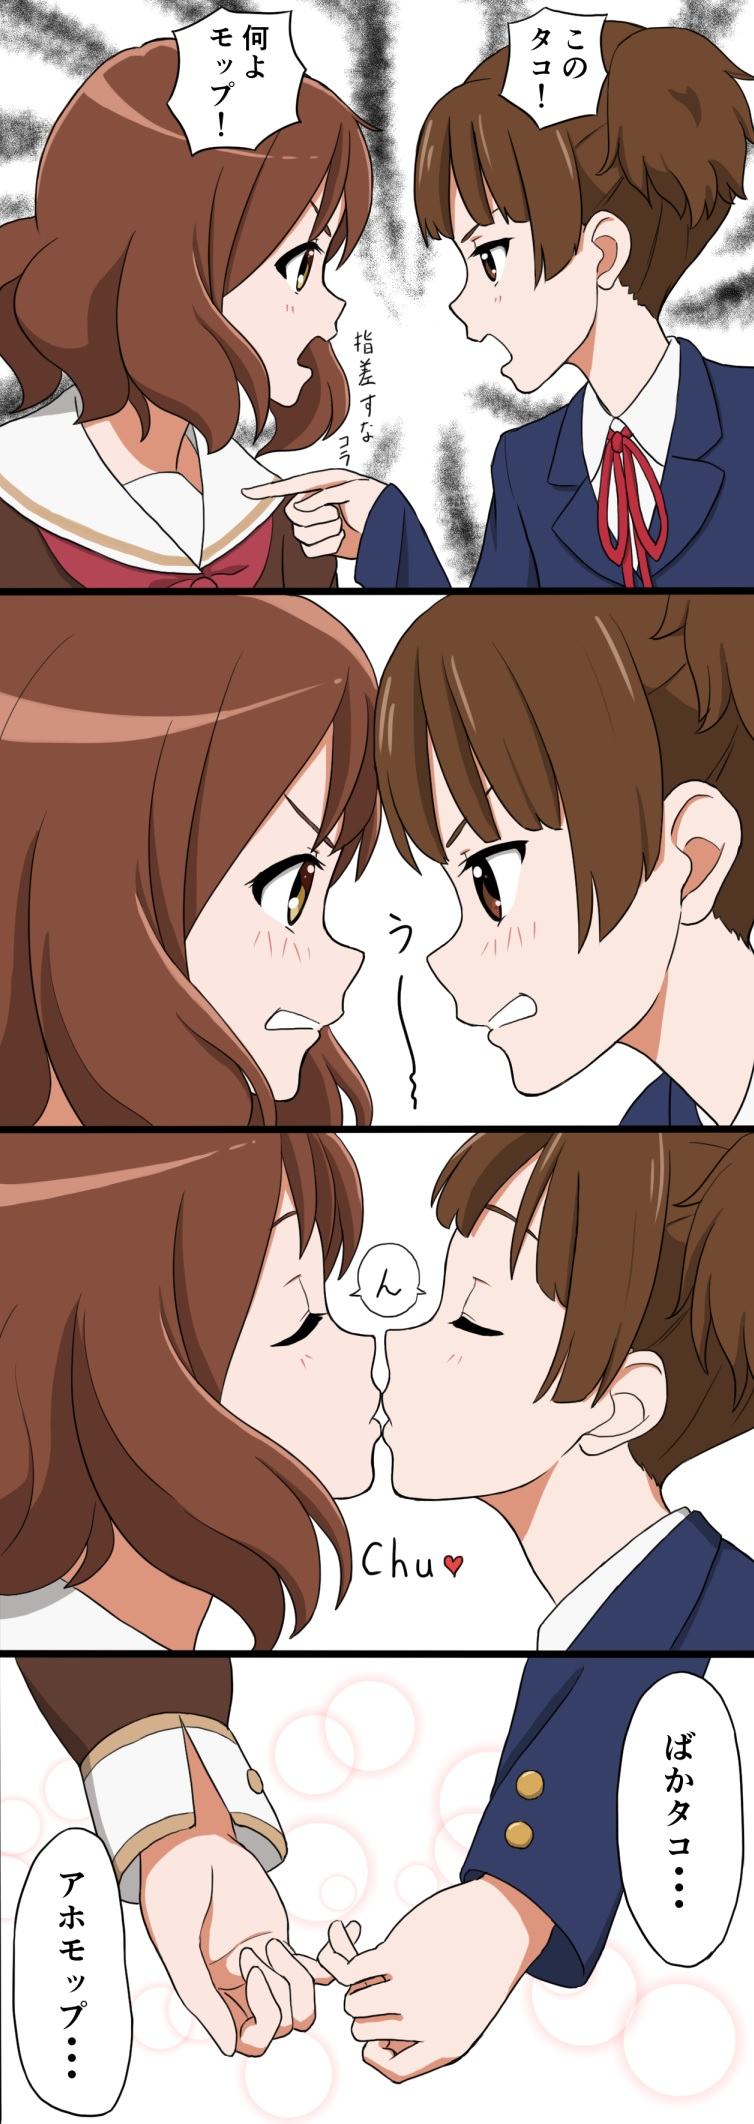 2girls 4koma angry blush brown_eyes brown_hair bubble_background clenched_teeth closed_eyes comic commentary_request crossover hibike!_euphonium highres k-on! kiss multiple_girls open_mouth oumae_kumiko pinky_swear pointing profile school_uniform short_hair short_twintails suzuki_jun teeth translation_request tsukkun twintails yuri